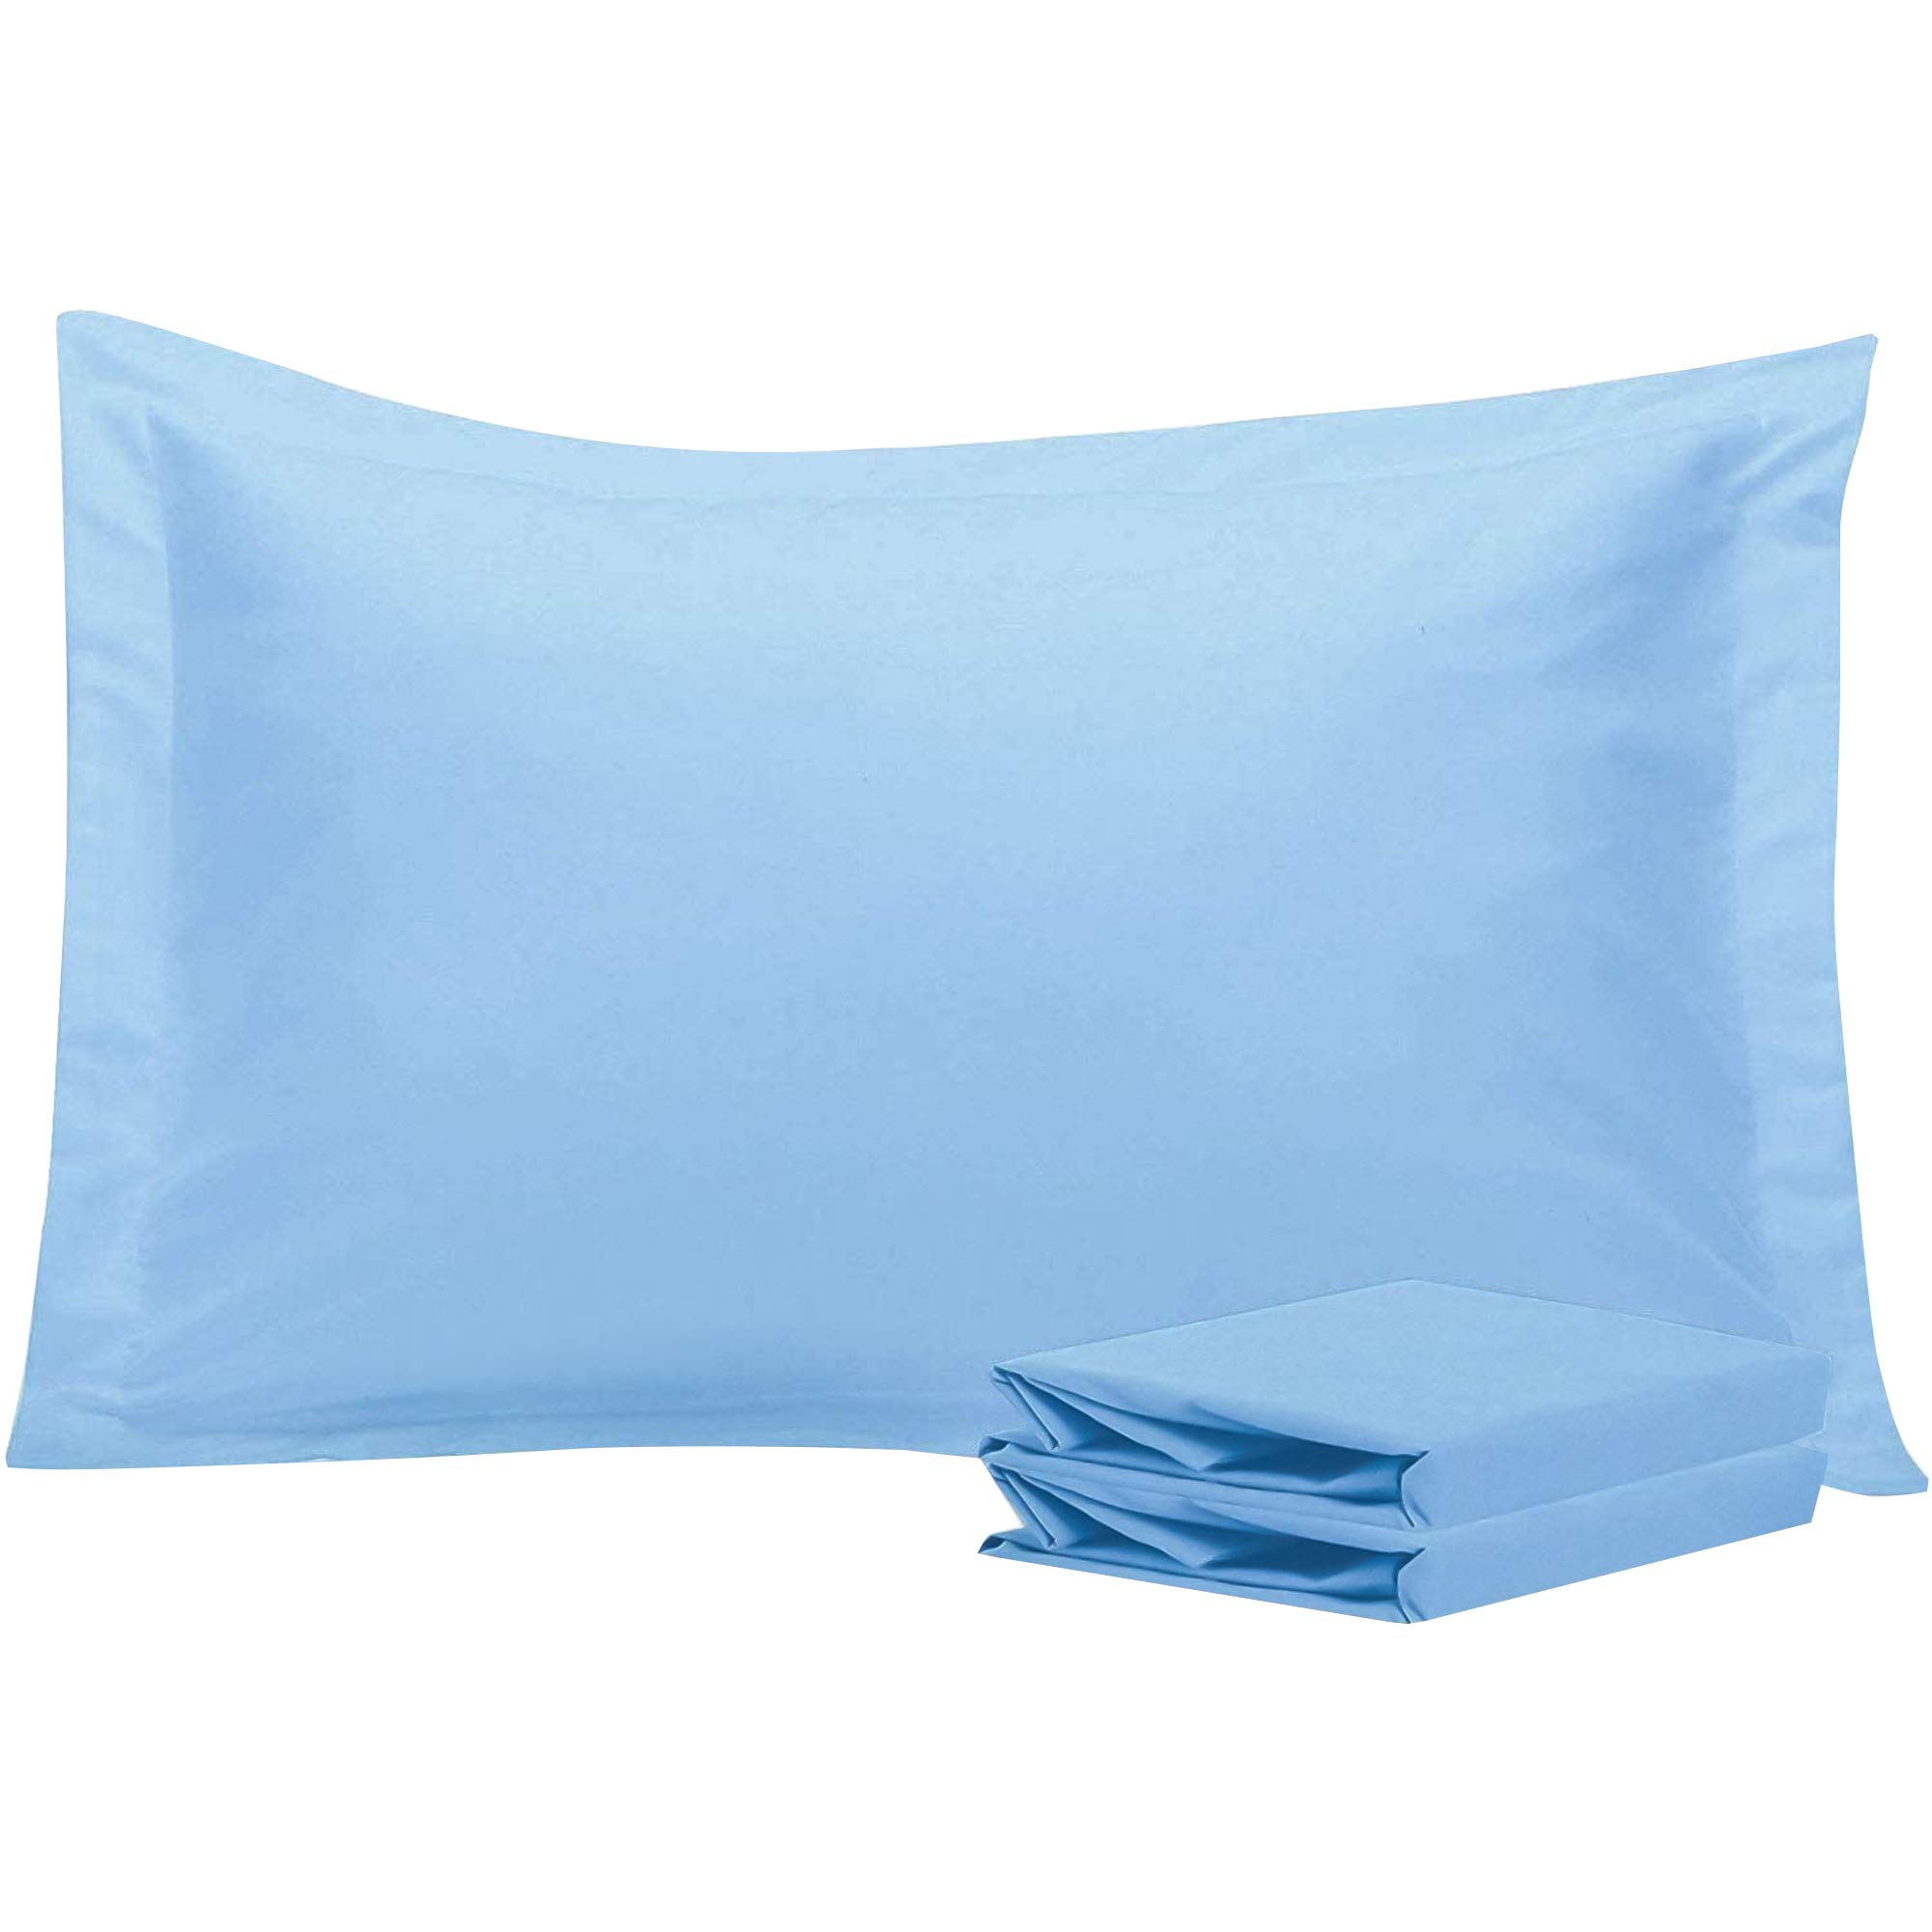 NTBAY Queen Pillow Shams, Set of 2, 100% Brushed Microfiber, Soft and Cozy, Wrinkle, Fade, Stain Resistant (Sky Blue, Queen)